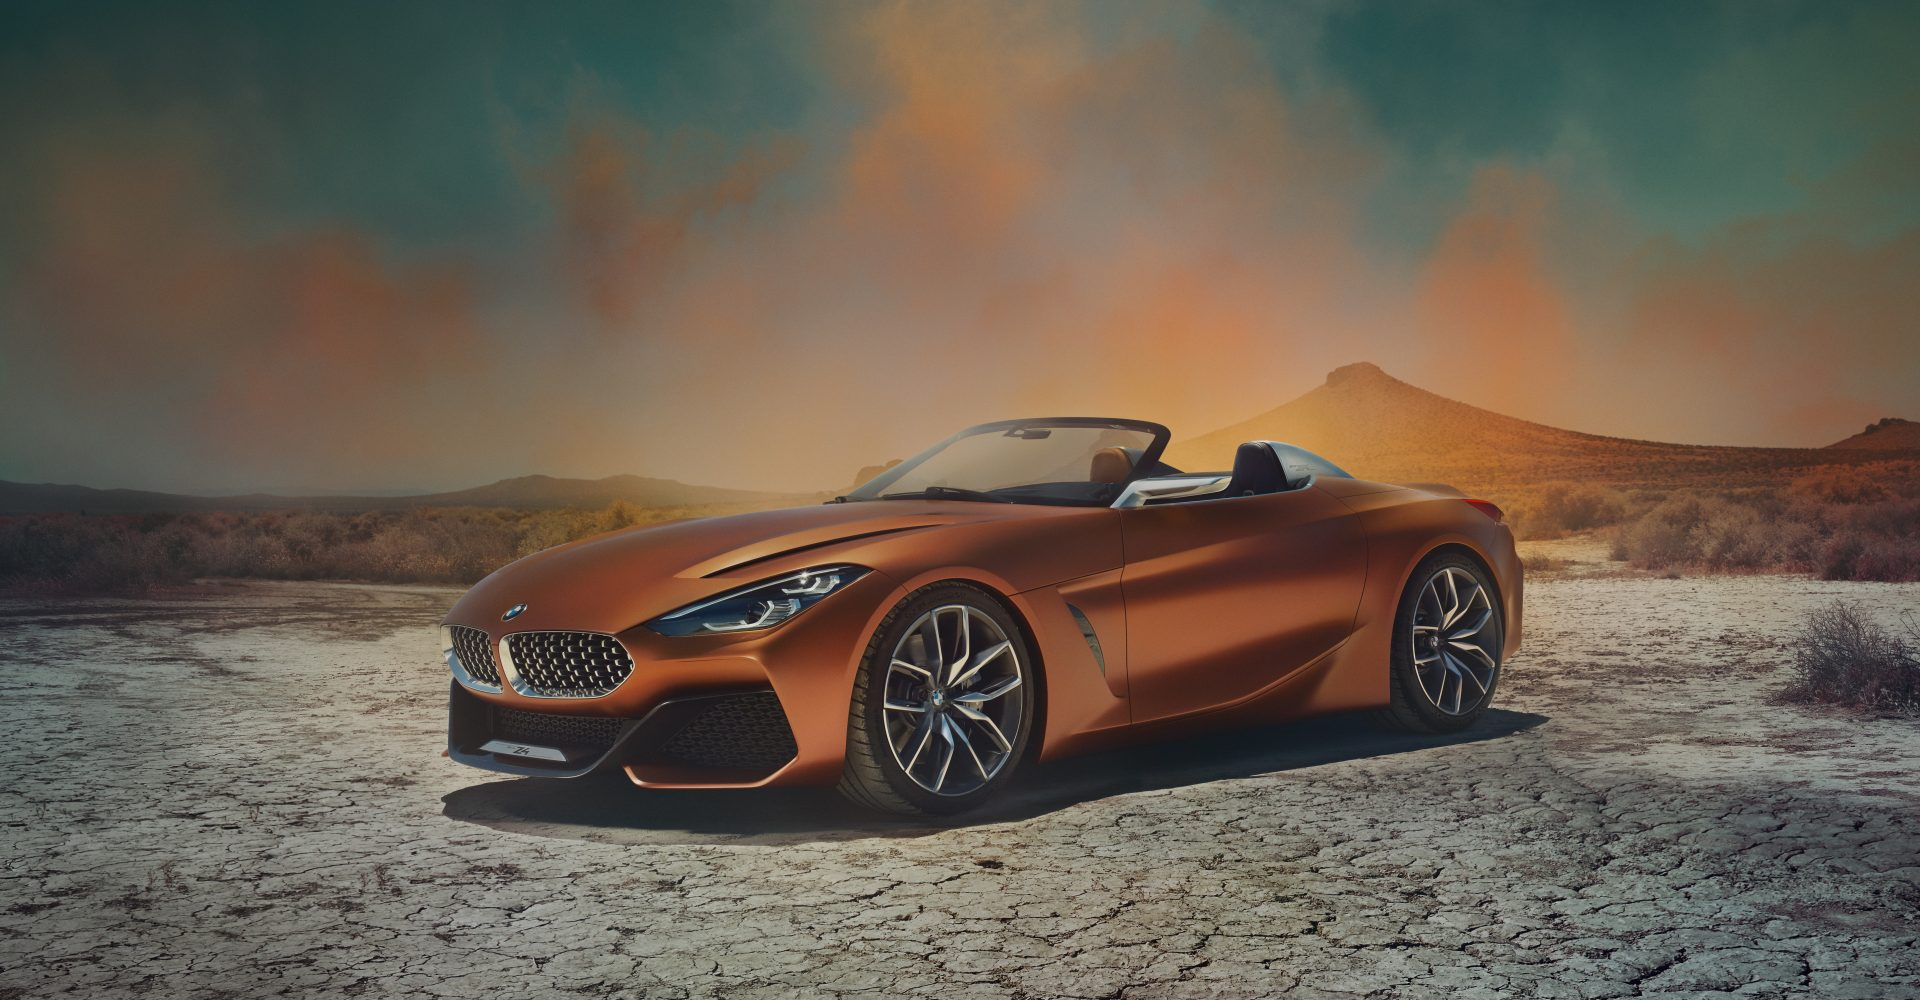 The BMW Z4 is back and it's making its debut at Pebble Beach